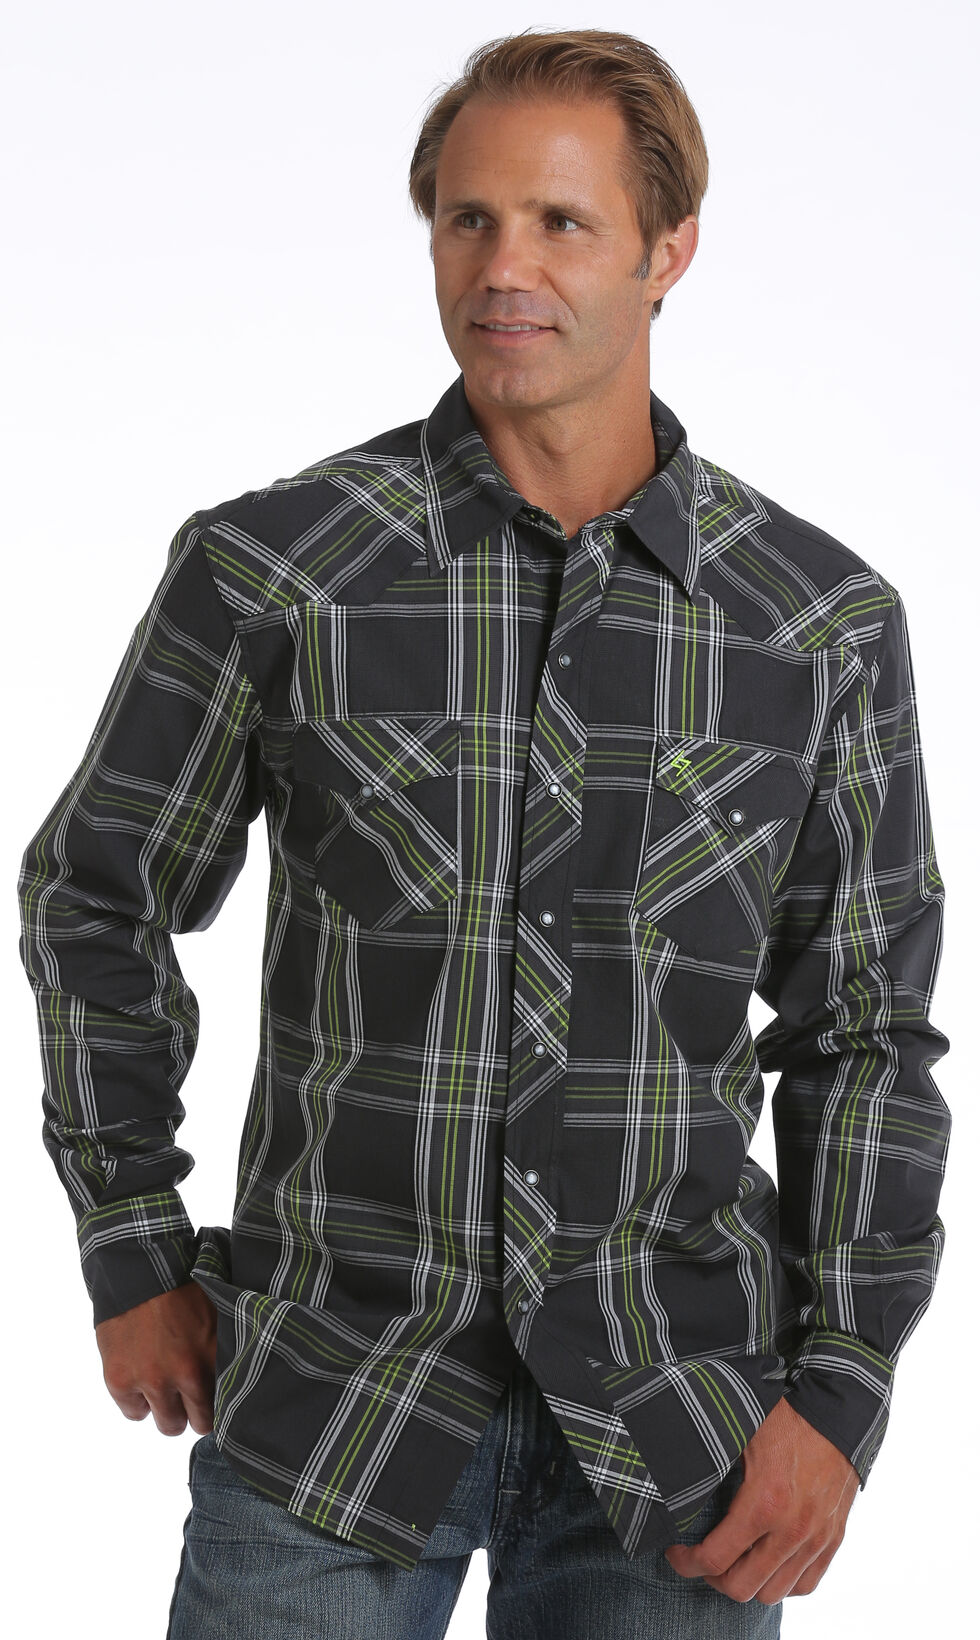 Garth Brooks Sevens by Cinch Men's Black Plaid Print Western Shirt, Black, hi-res